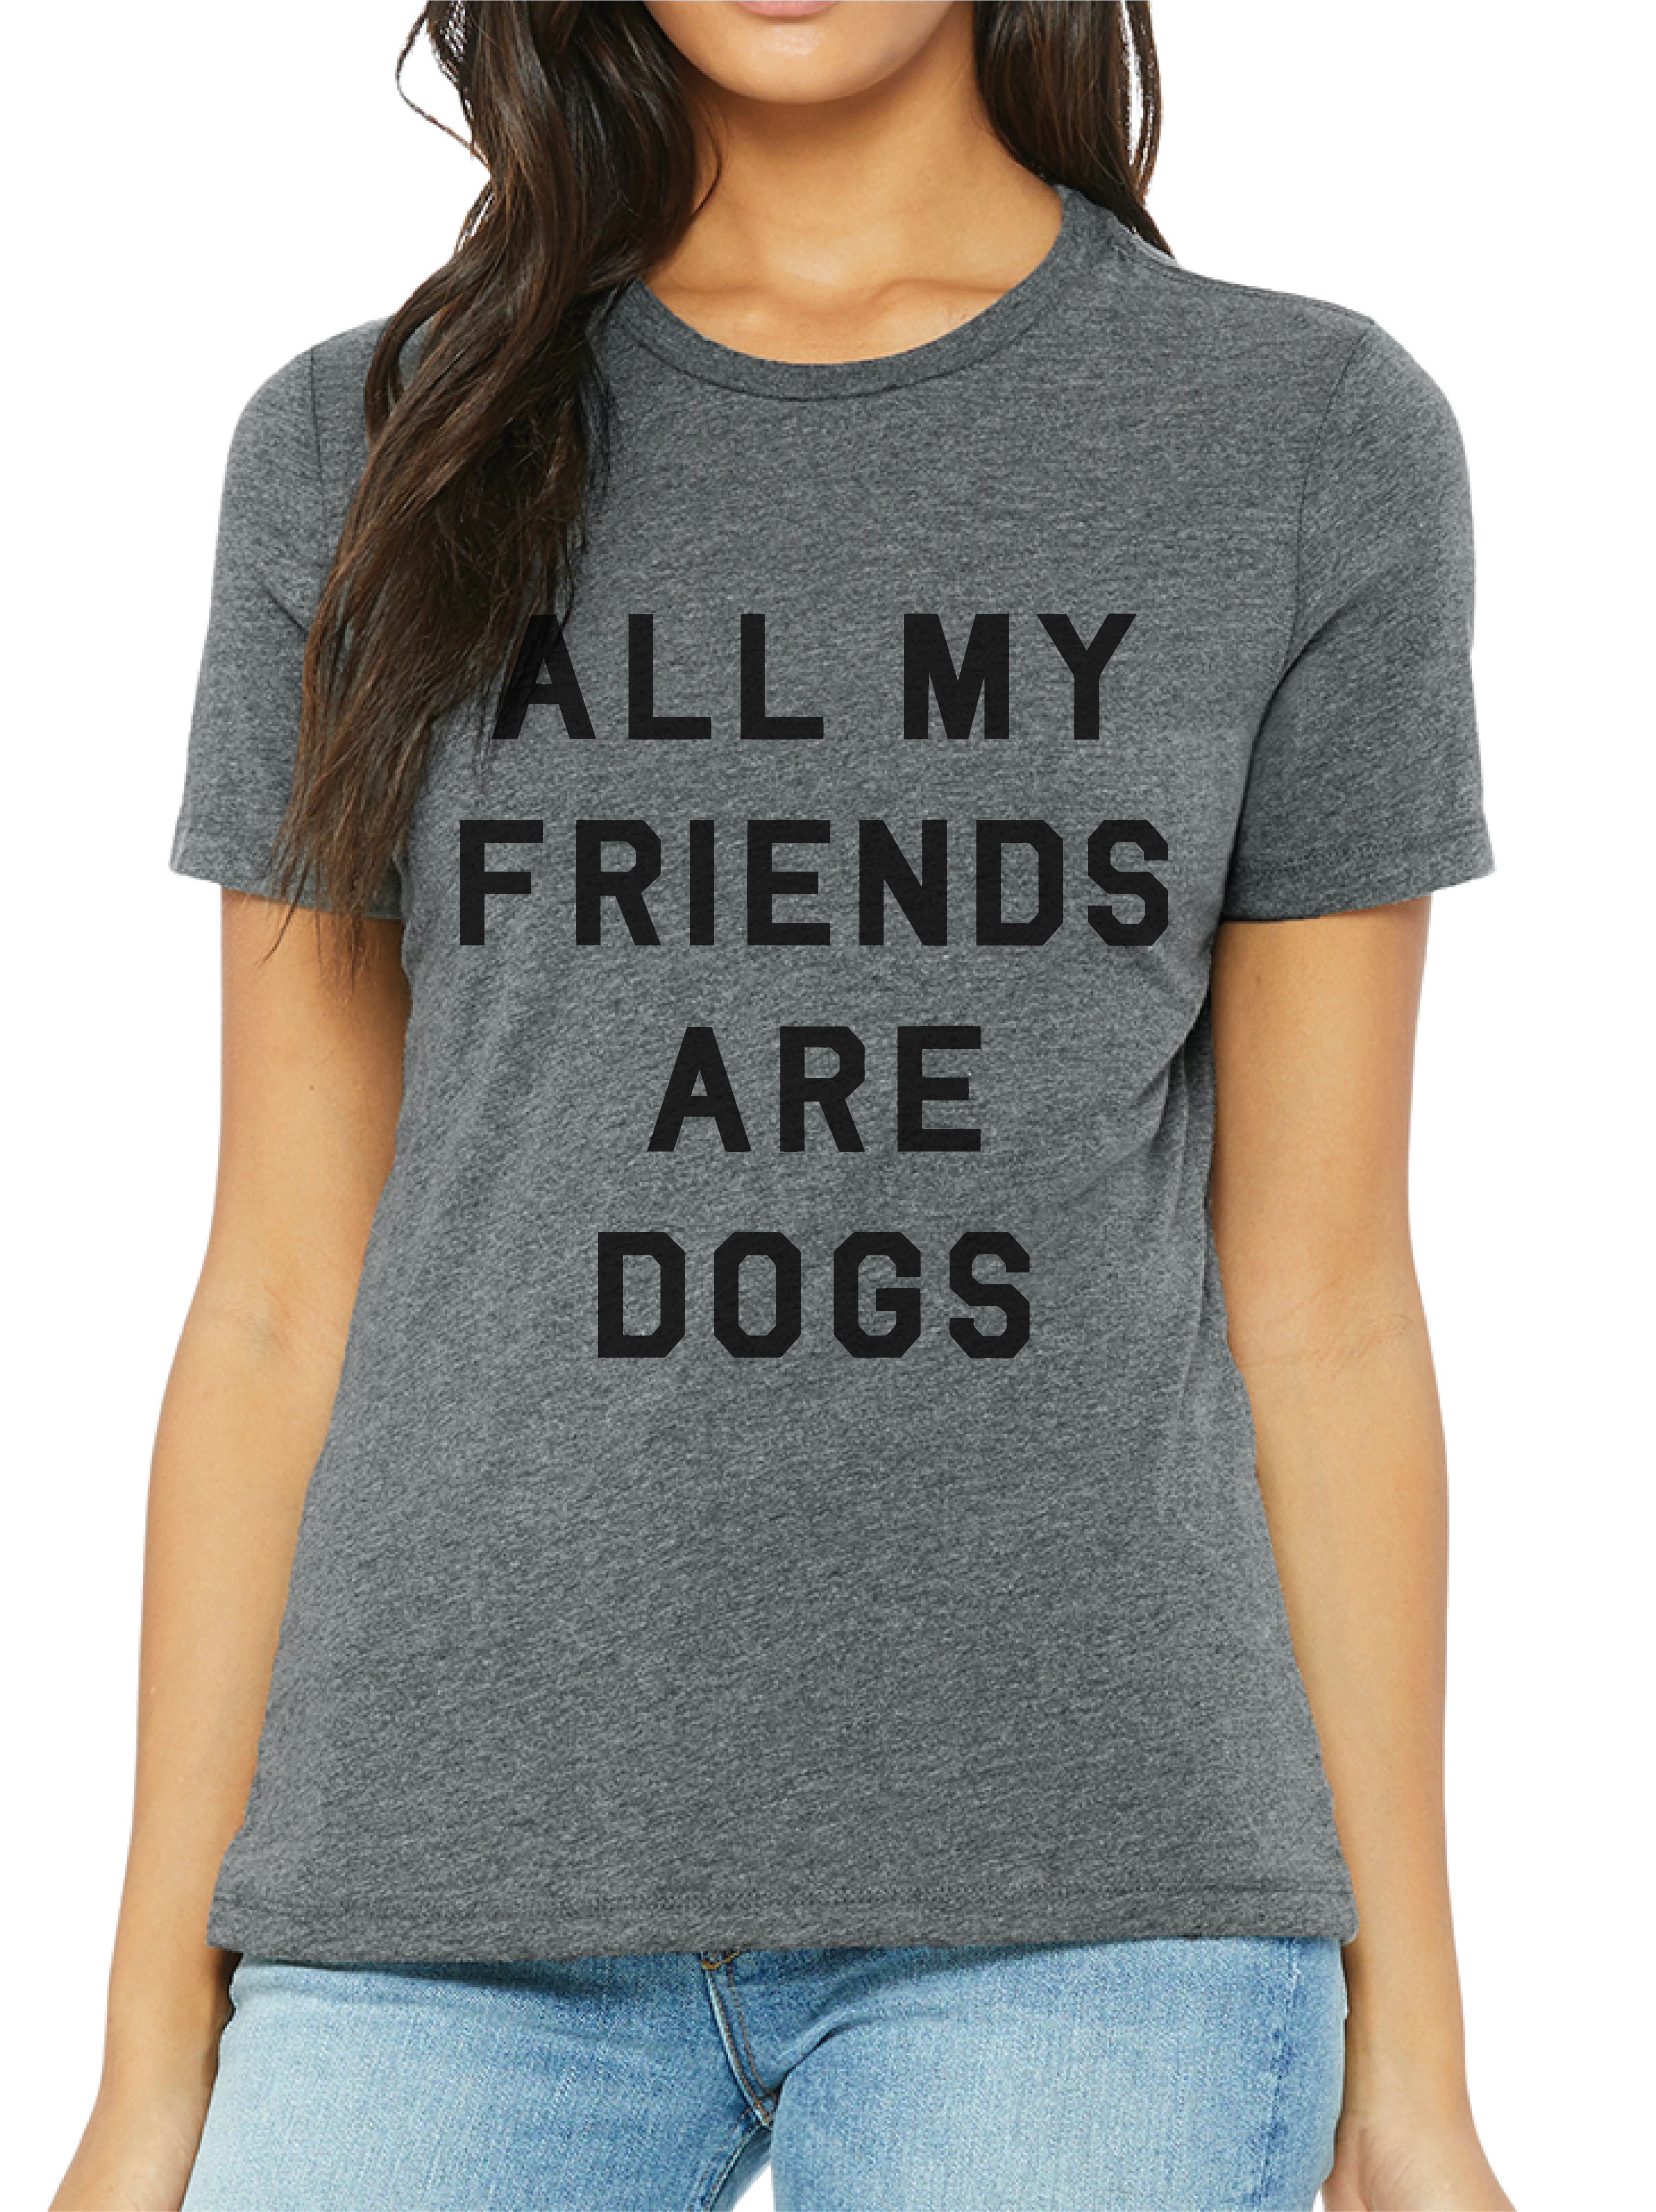 All My Friends Are Dogs Ladies Tee